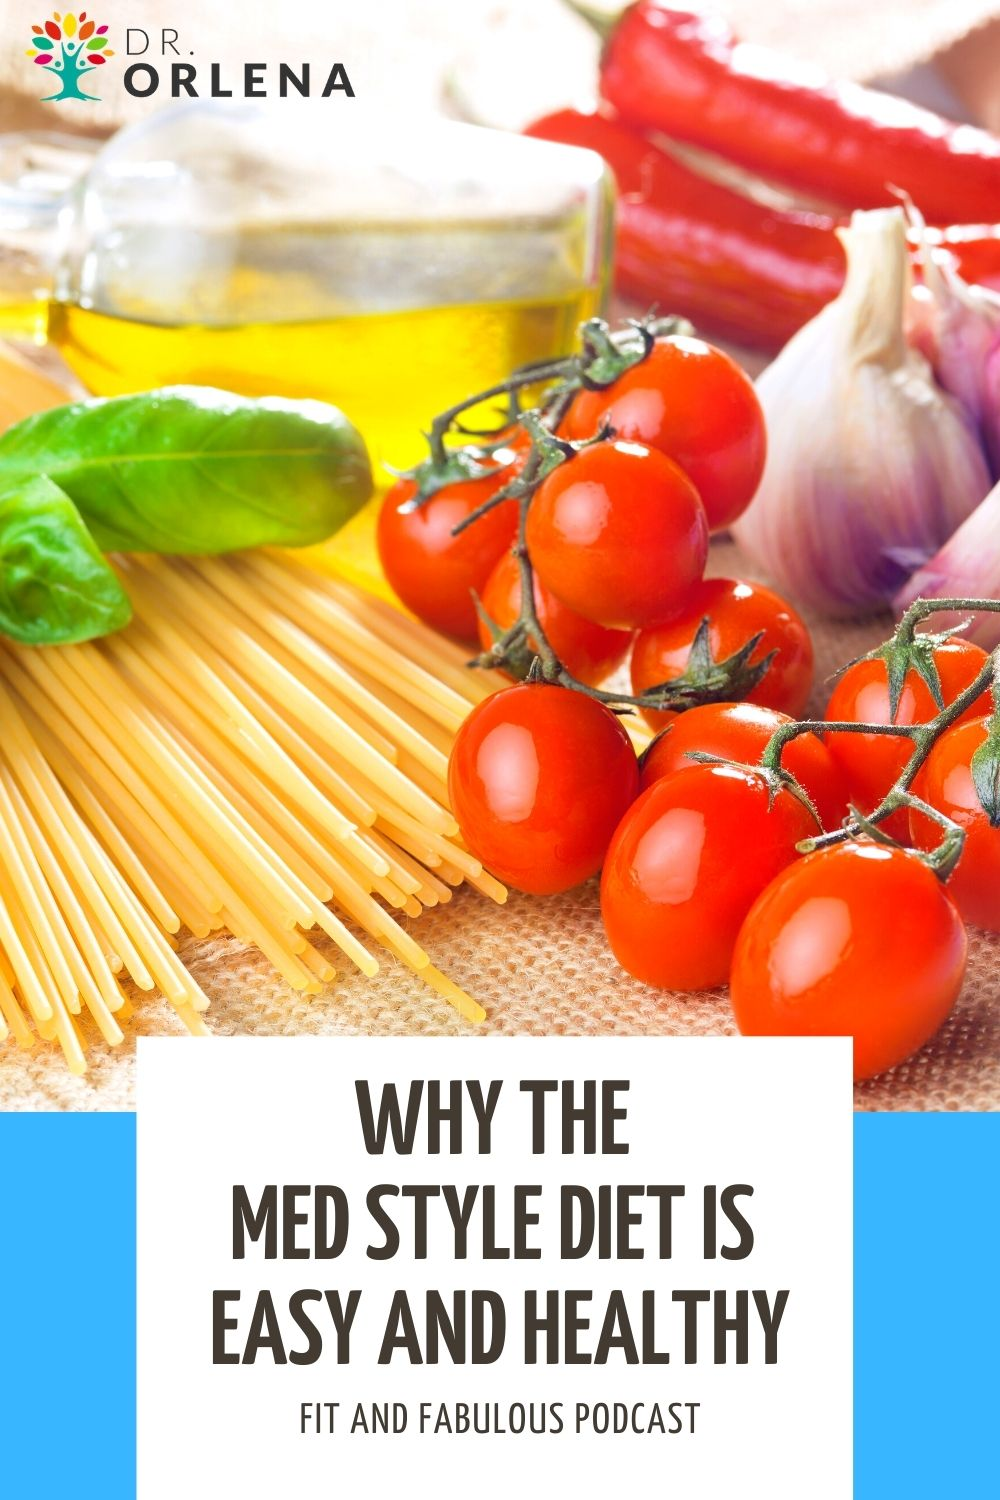 Various foods that are included in the Mediterranean Style Diet.